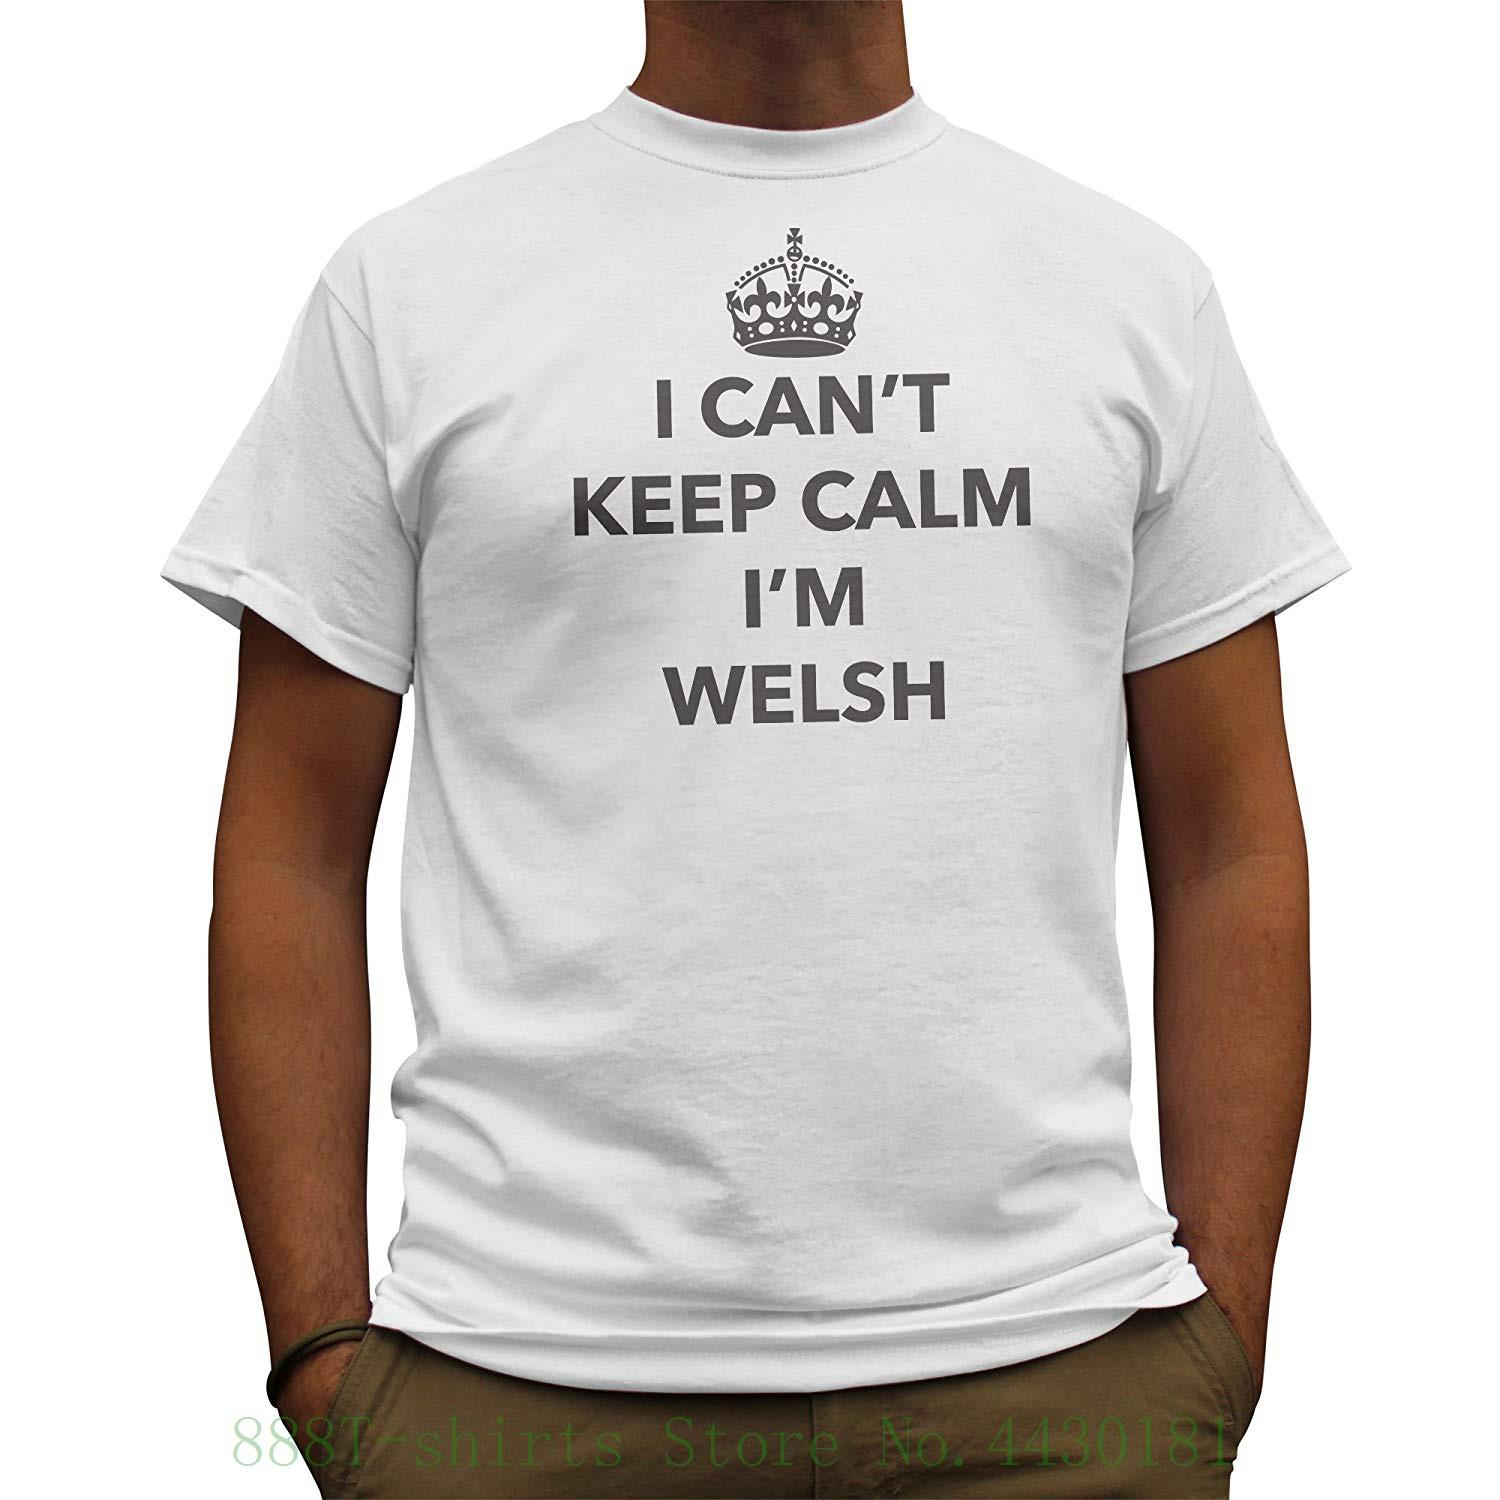 Nutees i cant keep calm im welsh wales funny mens t shirt blanc 100 cotton short sleeve o neck tops tee shirts online with 20 35 piece on